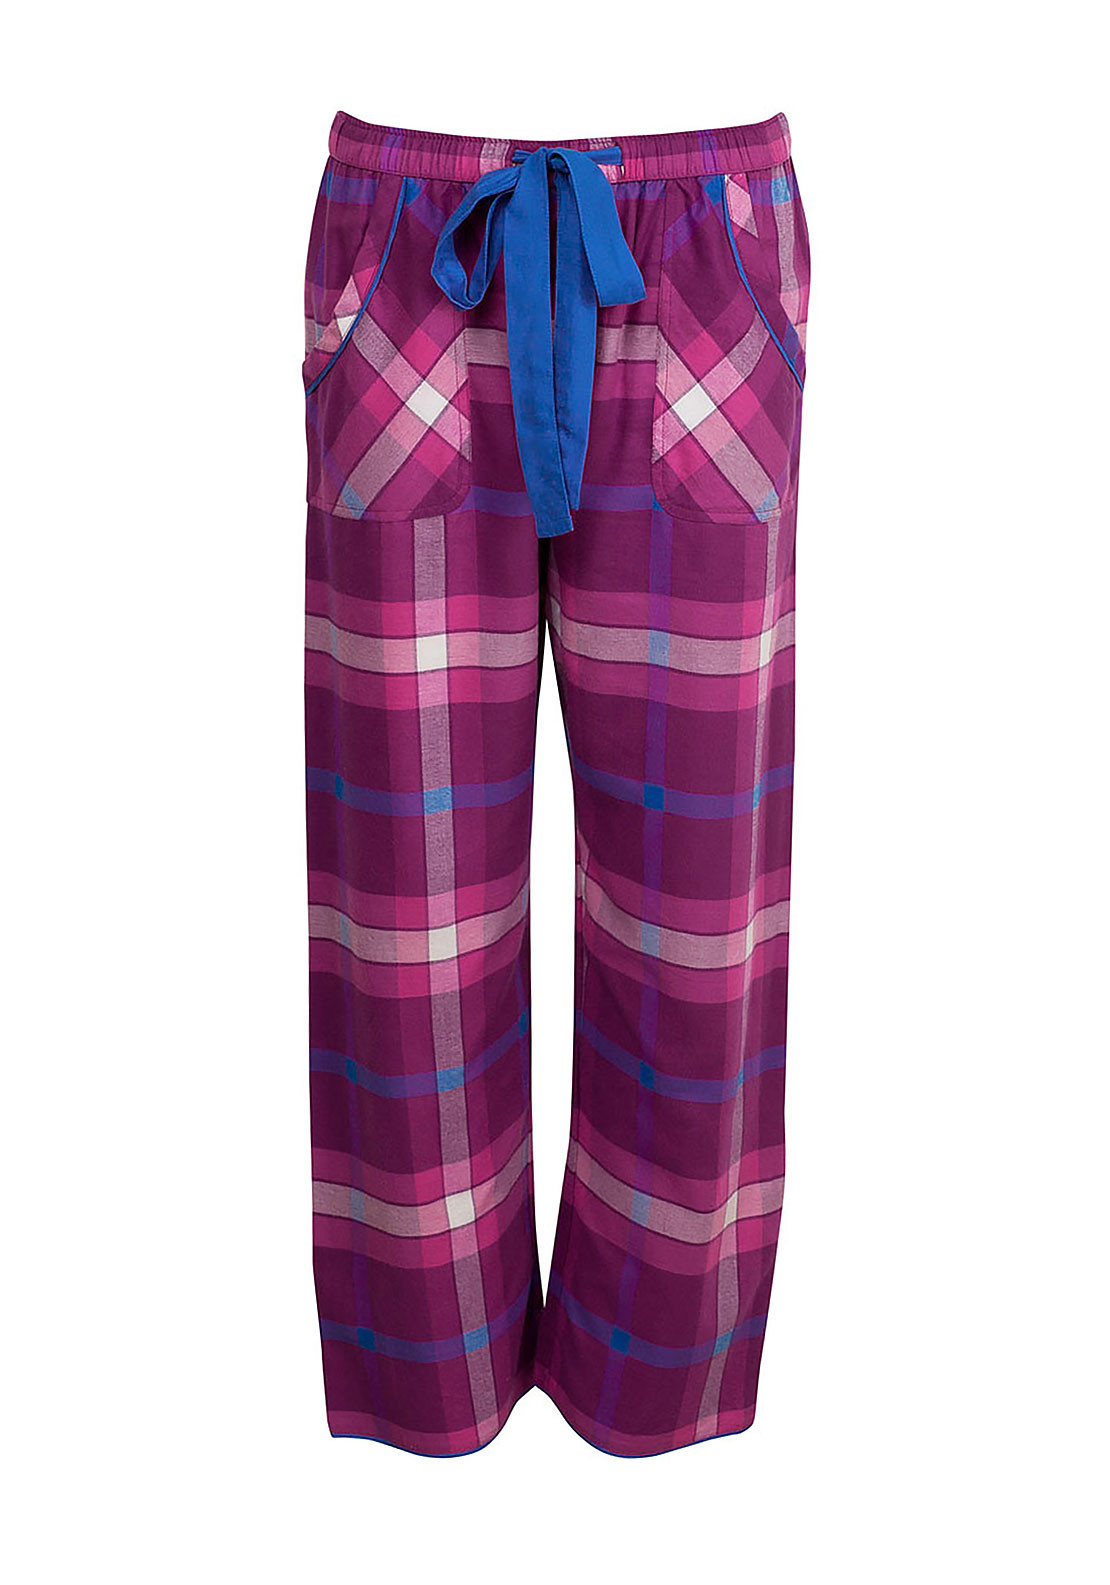 Cyberjammies Magenta Madness Checked Pyjama Bottoms, Magenta Pink